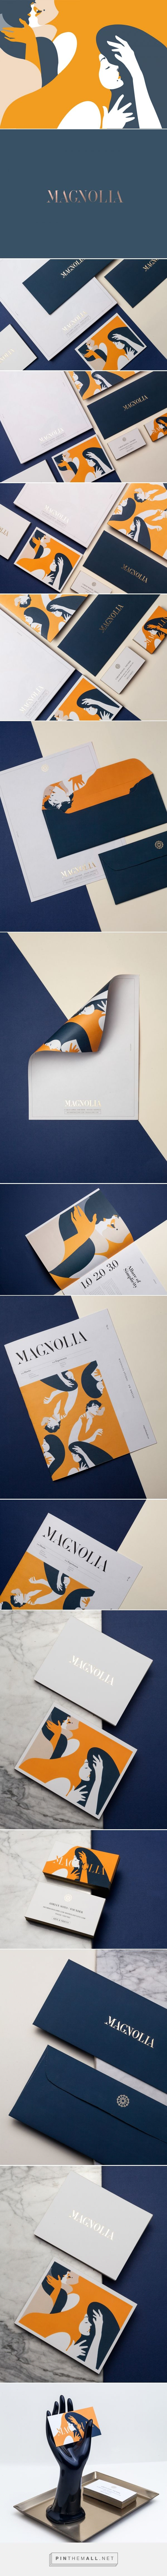 MAGNOLIA Industrial Design Studio Branding by Monotypo Studio | Fivestar Branding Agency – Design and Branding Agency & Curated Inspiration Gallery  #branding #brand #design #designinspiration